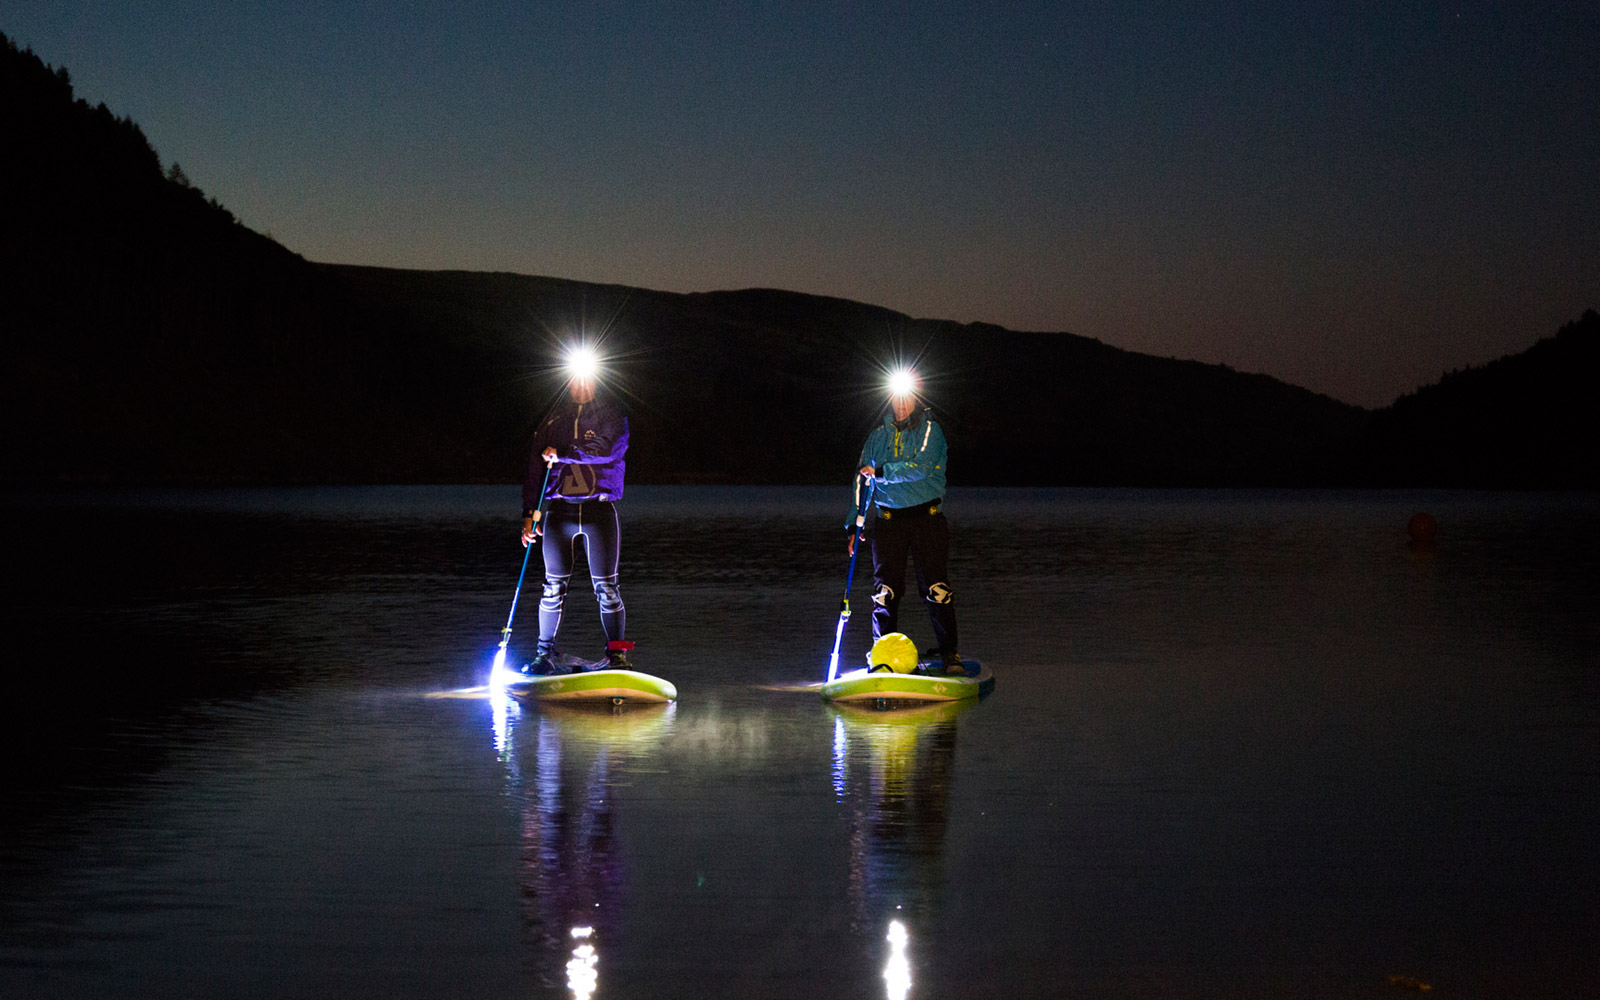 Stand-up paddleboard in the moonlight, in Wales, U.K.